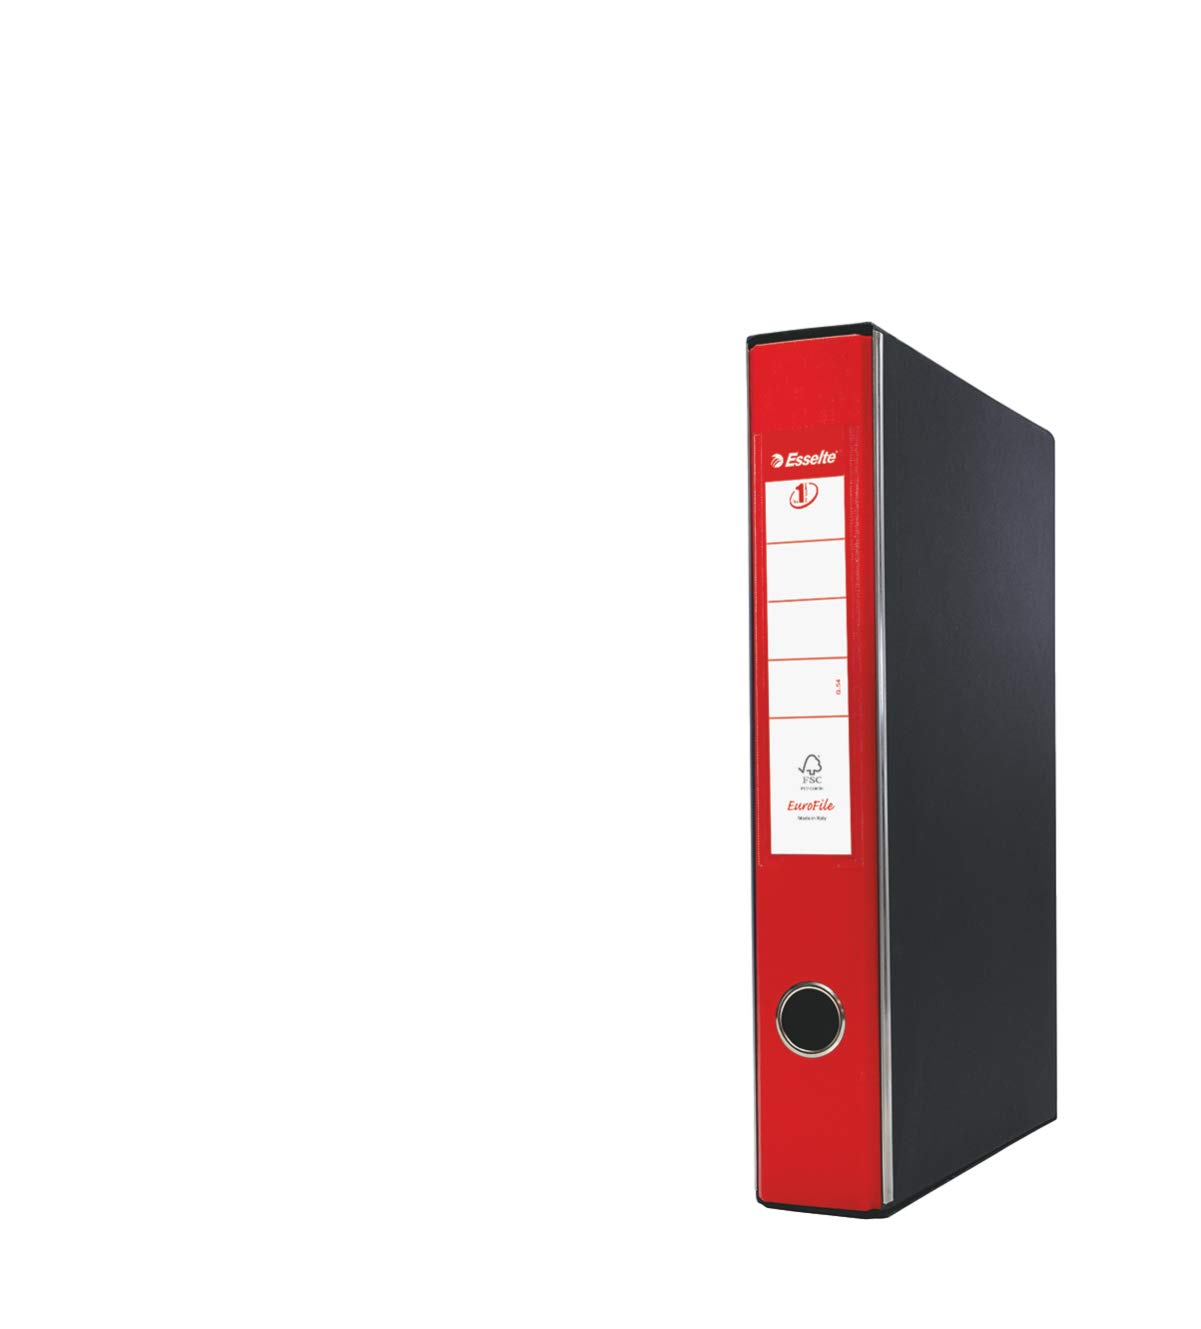 Esselte-RACCOGLITORE EUROFILE with Lever Mechanism and with Mobile, Protocol Format, Cardboard Plastic Coated Dorso 5 cm red by Esselte